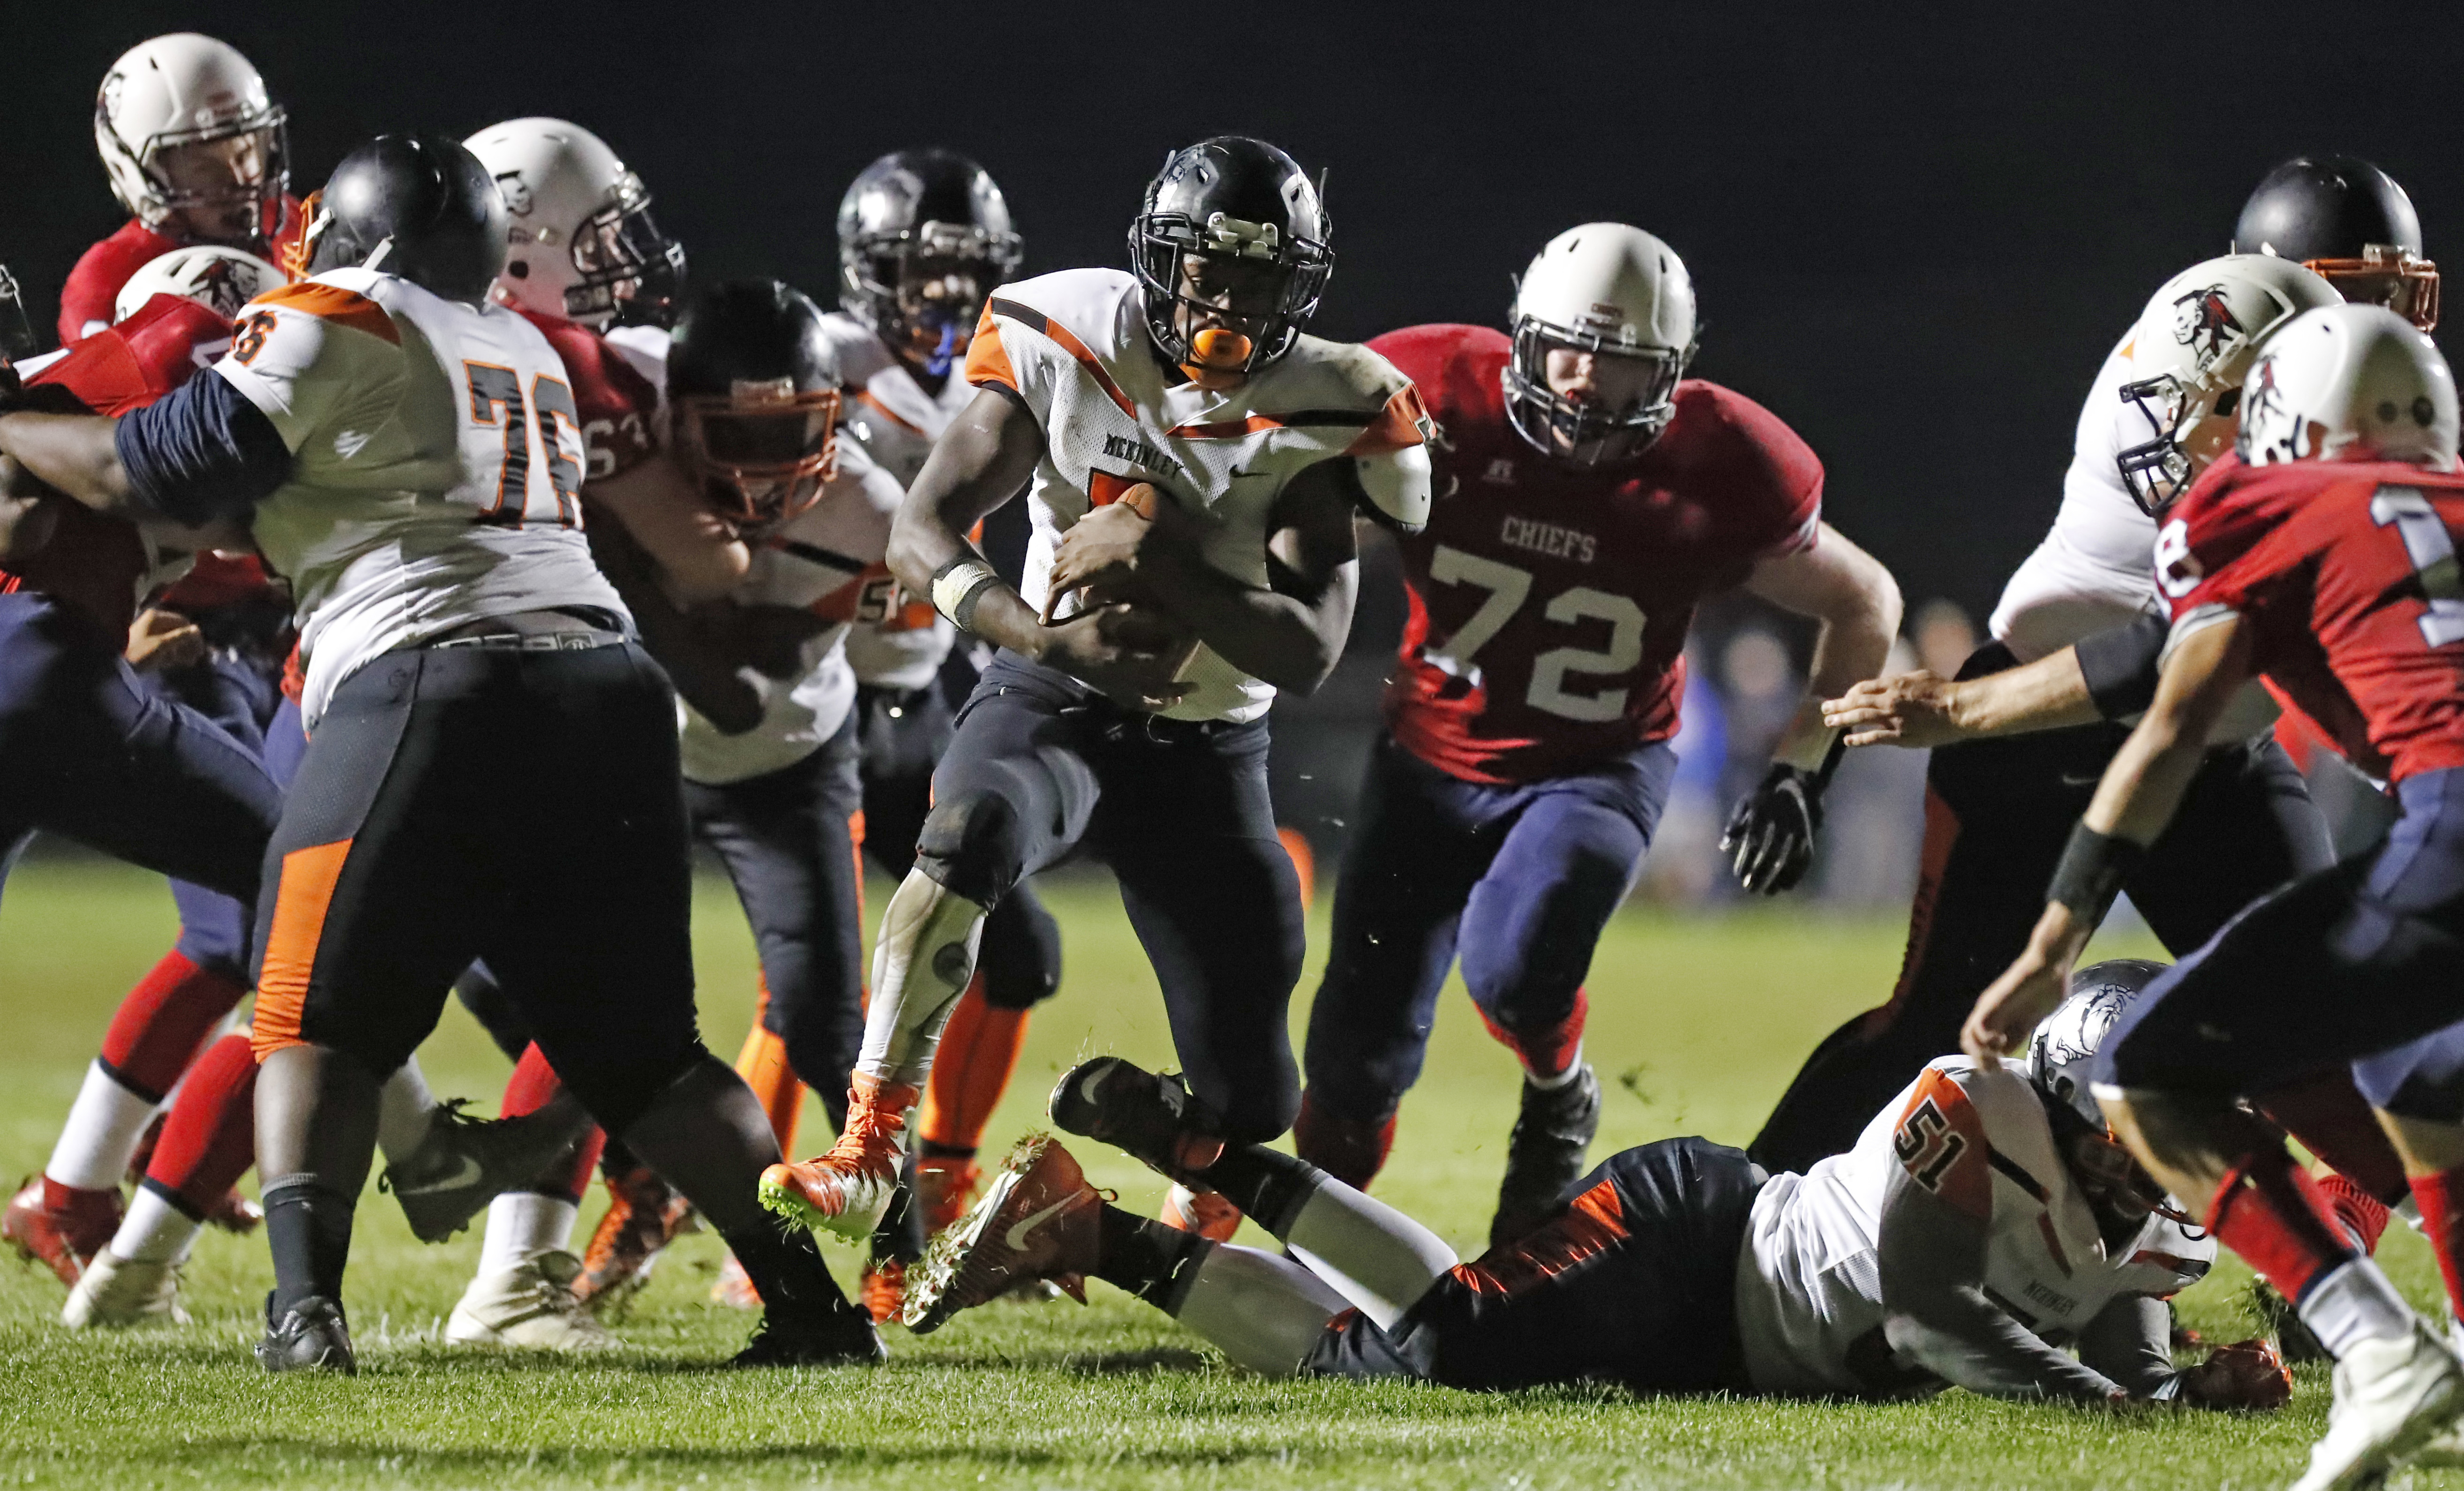 Kaiyer Fields rushes for one of his team-leading  10 touchdowns for McKinley during a Week Four win at Iroquois -- one of five straight games the Macks have won to overcome a 0-2 start.  (Harry Scull Jr./Buffalo News)